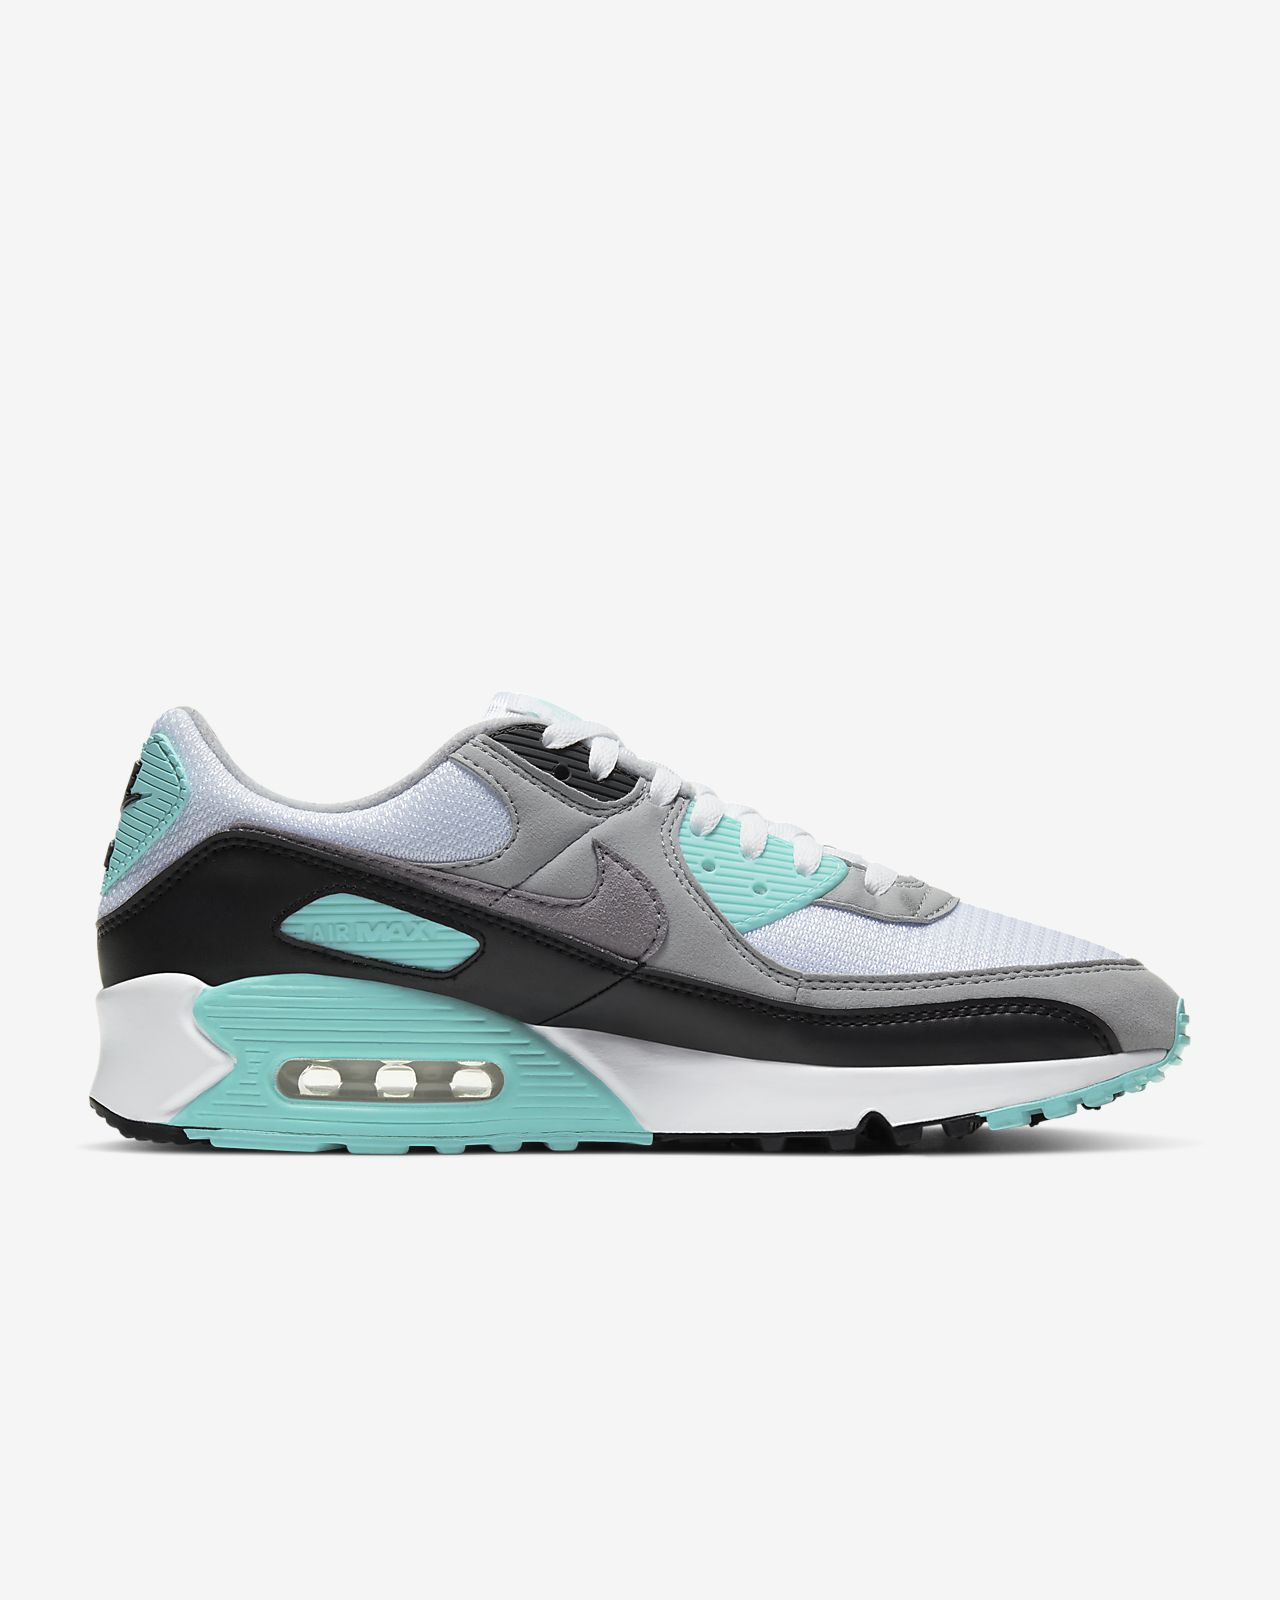 Girls Nike Air Max 90 Premium Particle Beige Running Shoes For Sale